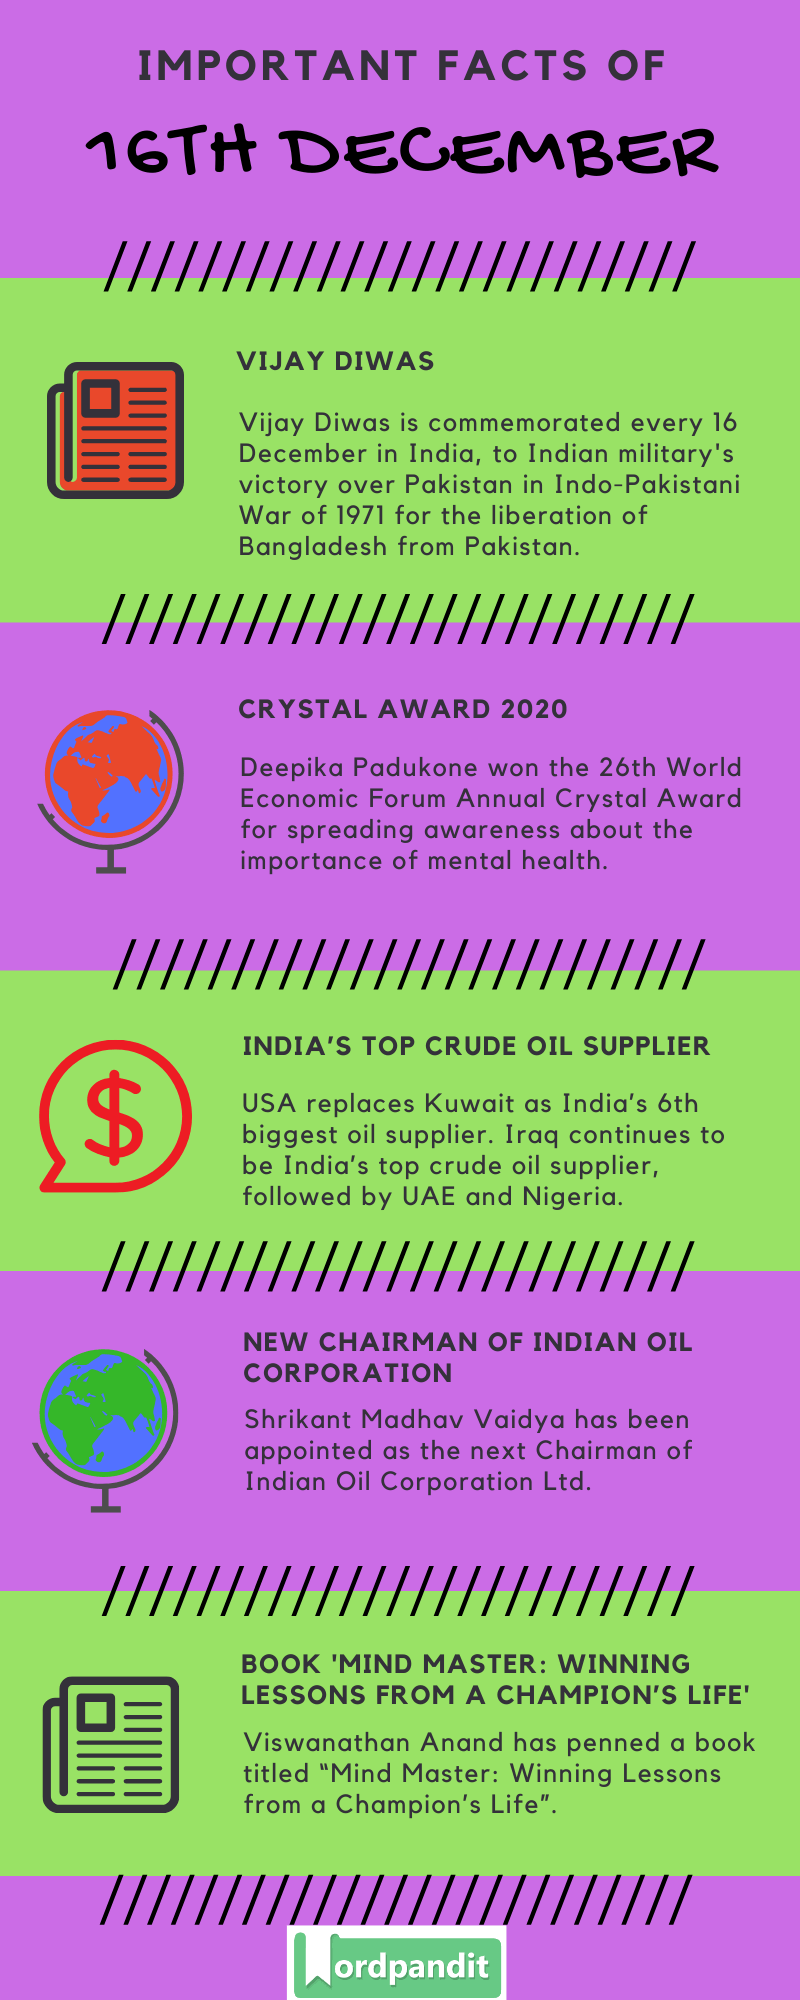 Daily Current Affairs 16 December 2019 Current Affairs Quiz 16 December 2019 Current Affairs Infographic